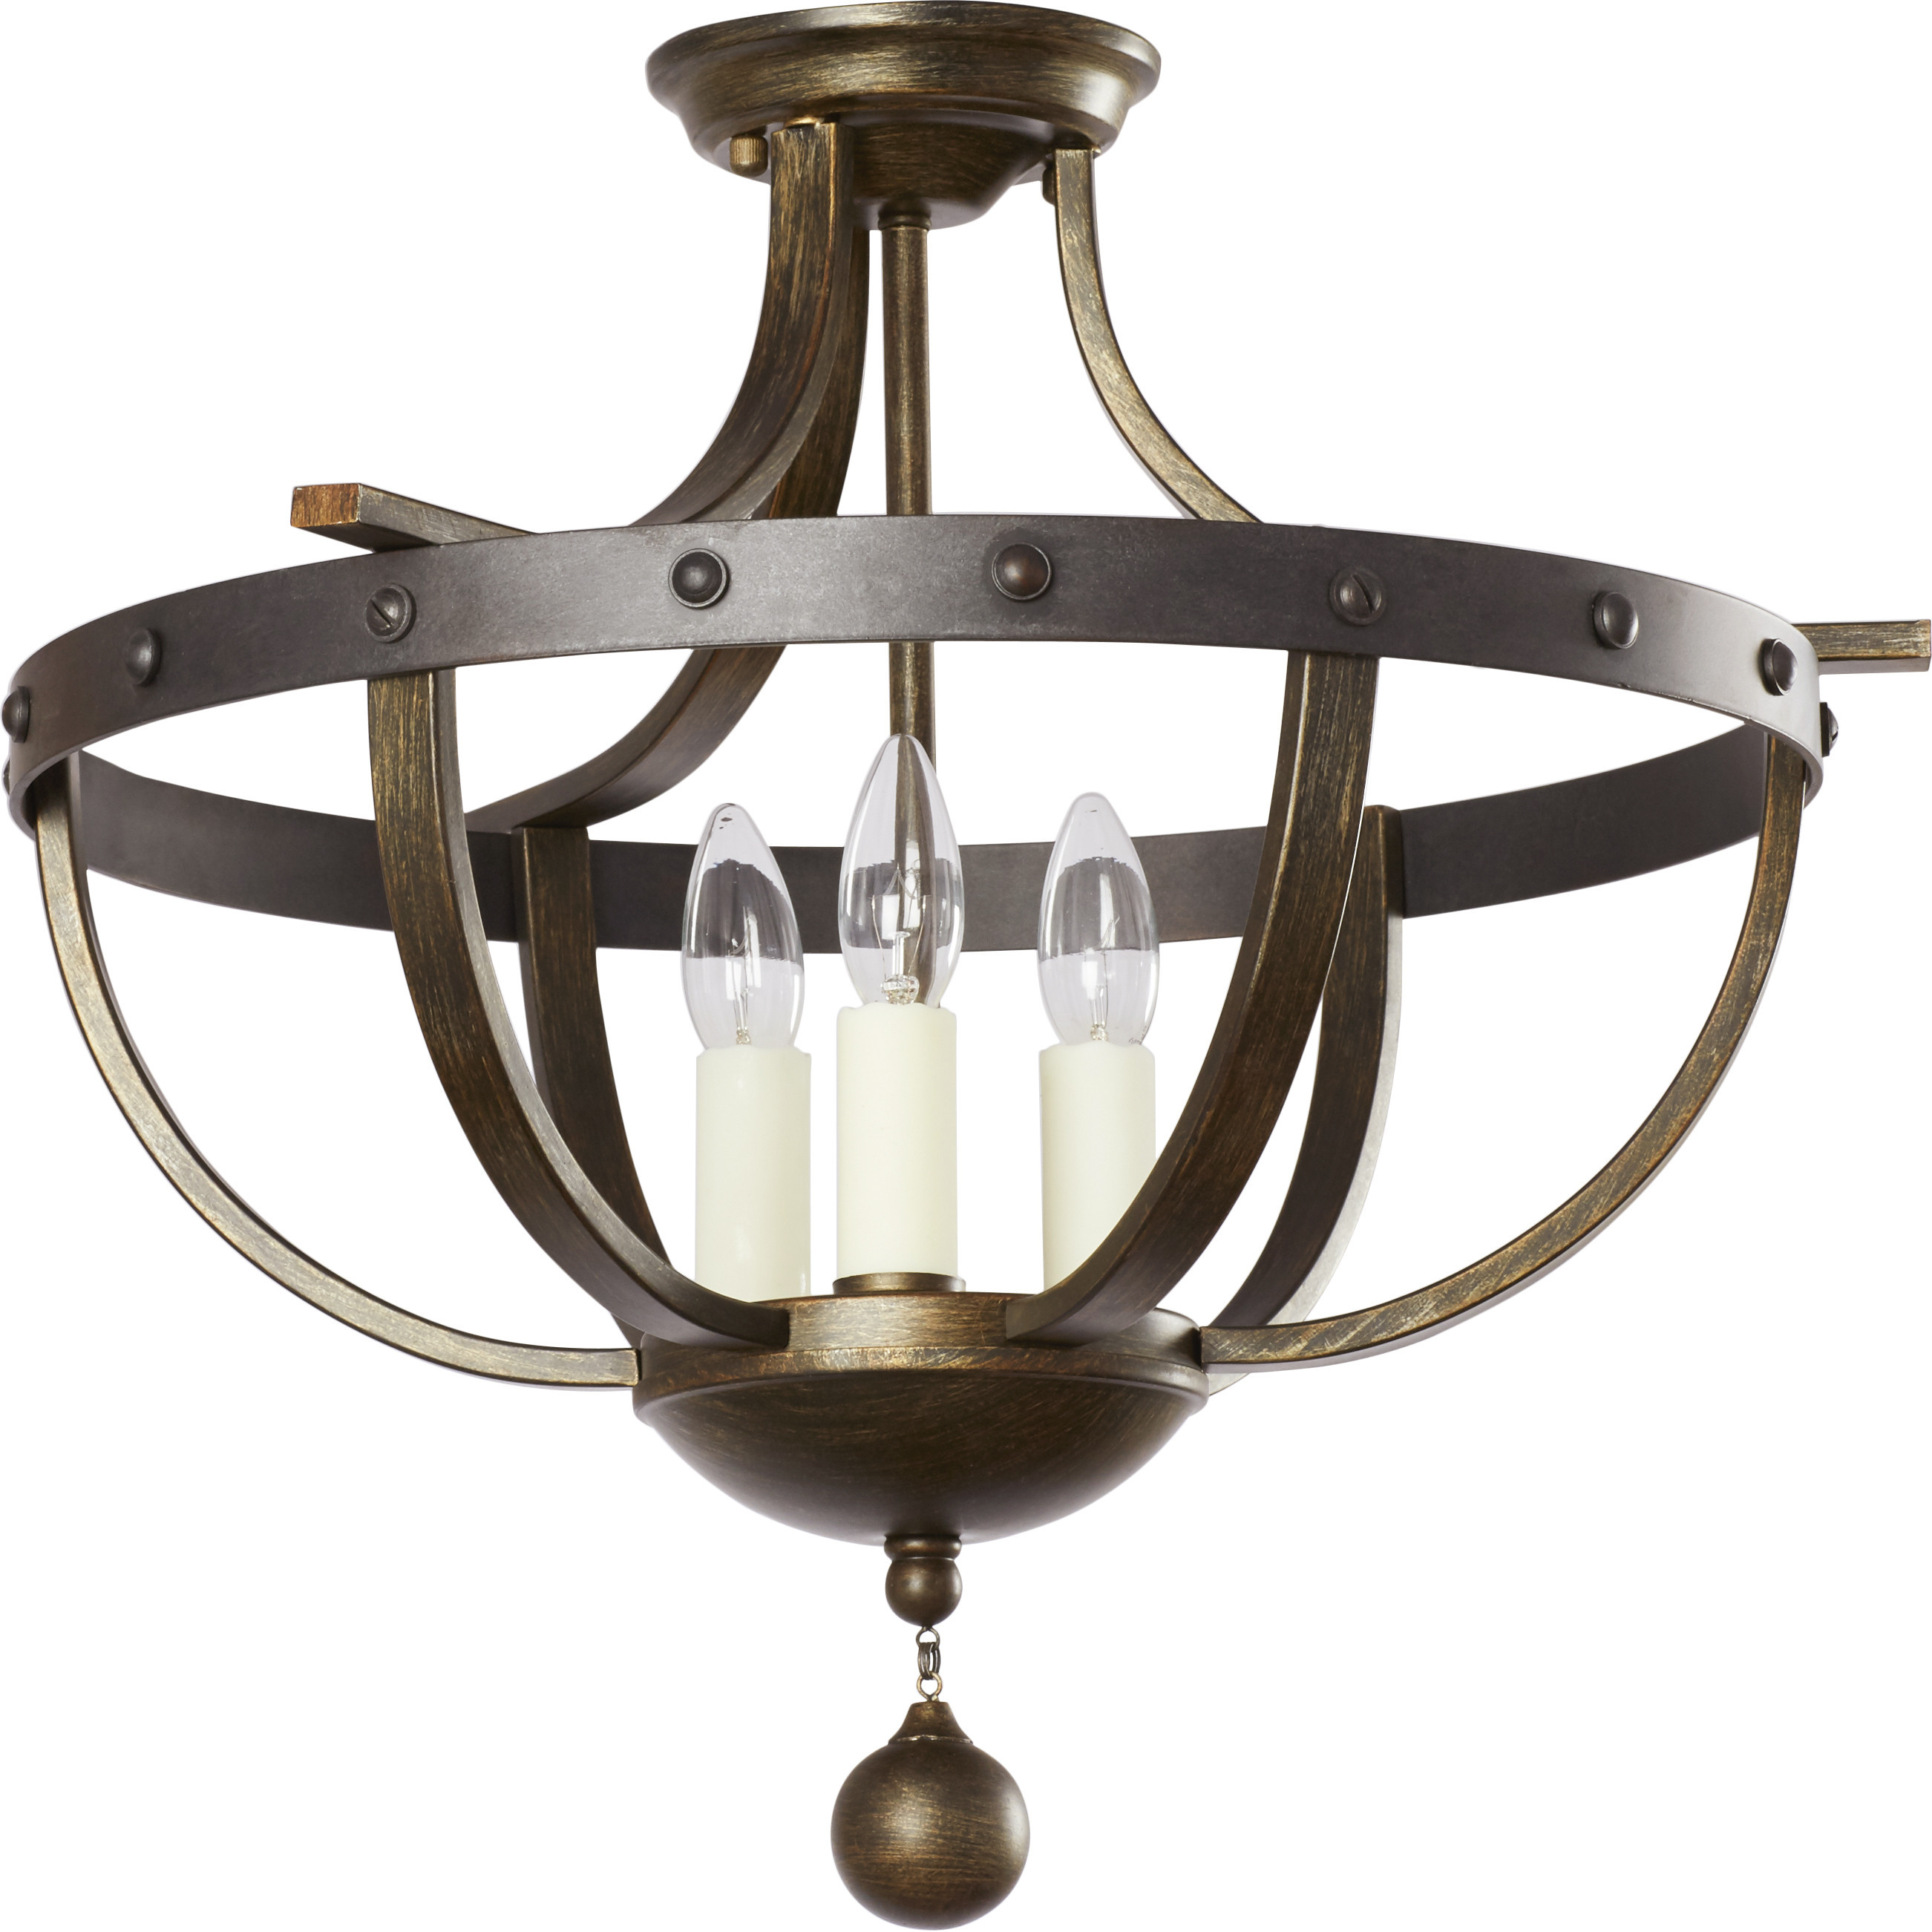 Best ideas about Semi Flush Mount Lighting . Save or Pin August Grove Betty Jo 3 Light Semi Flush Mount & Reviews Now.